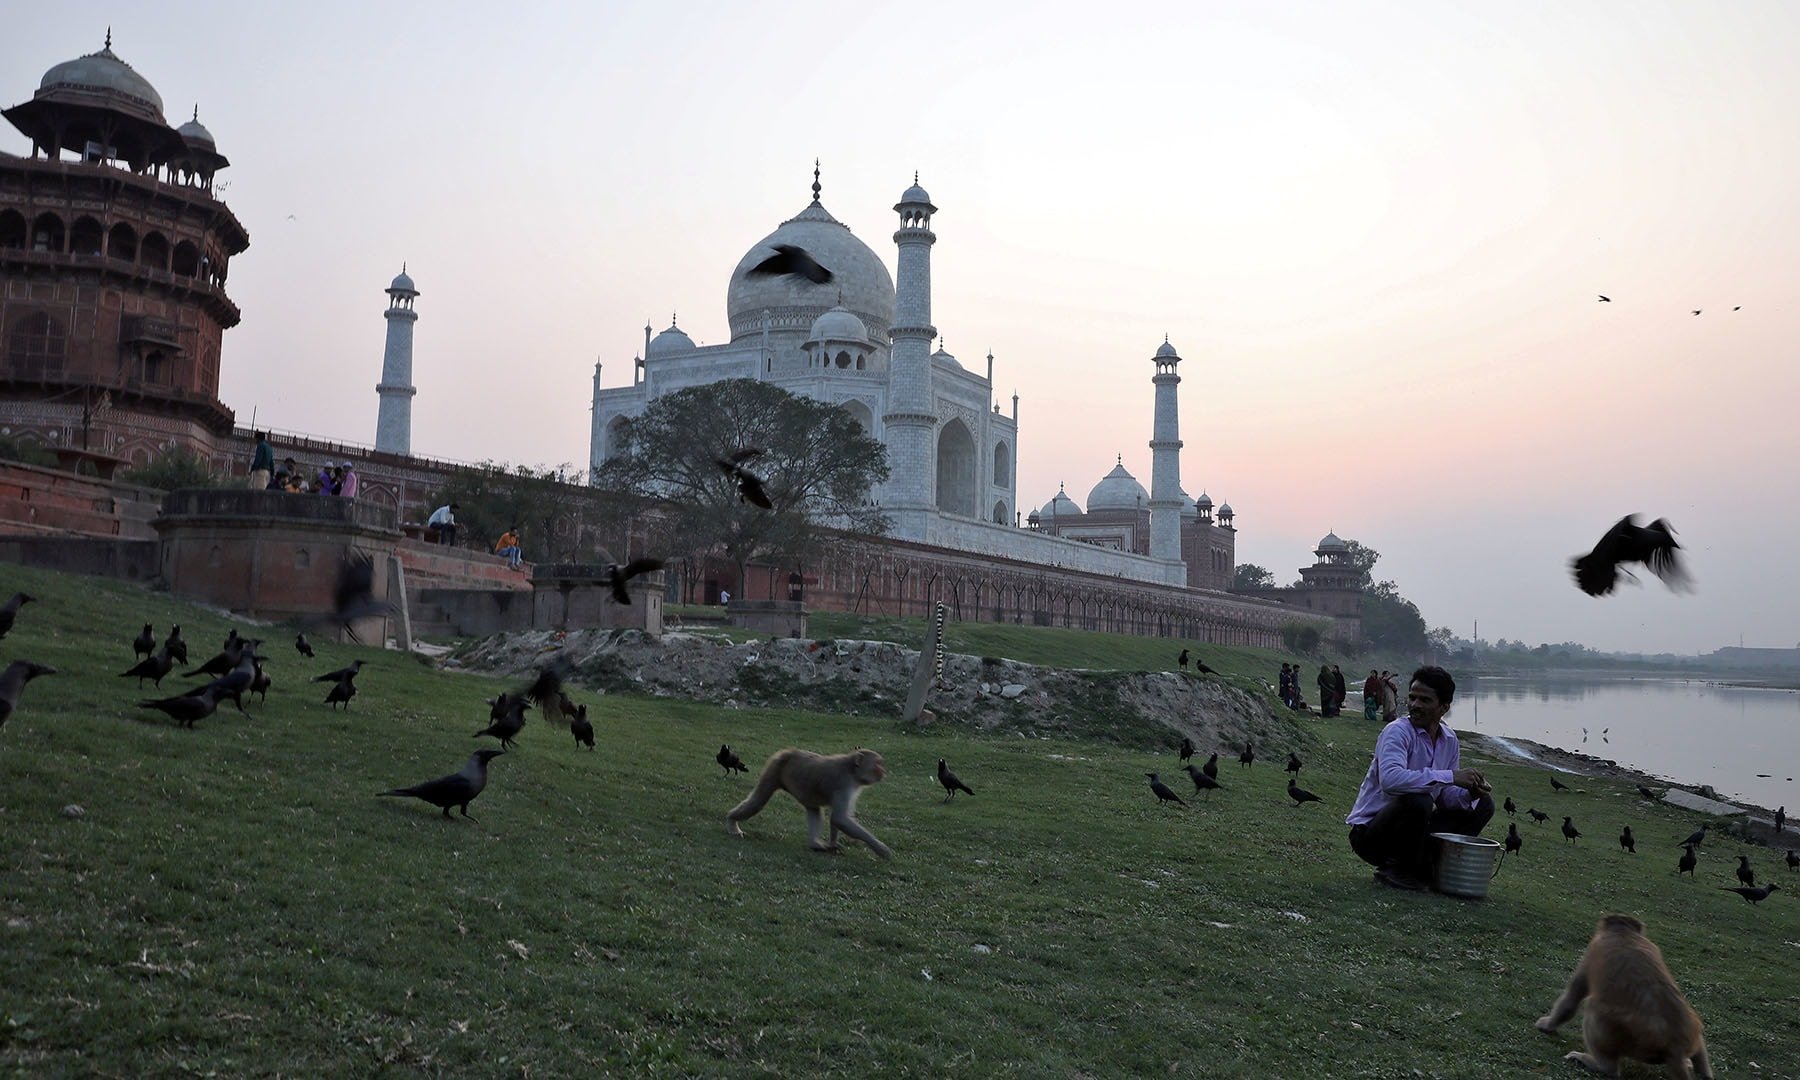 Monkeys walk as a man feeds birds outside the historic Taj Mahal, where US President Donald Trump and first lady Melania Trump are expected to visit, in Agra, India, on February 23. — Reuters